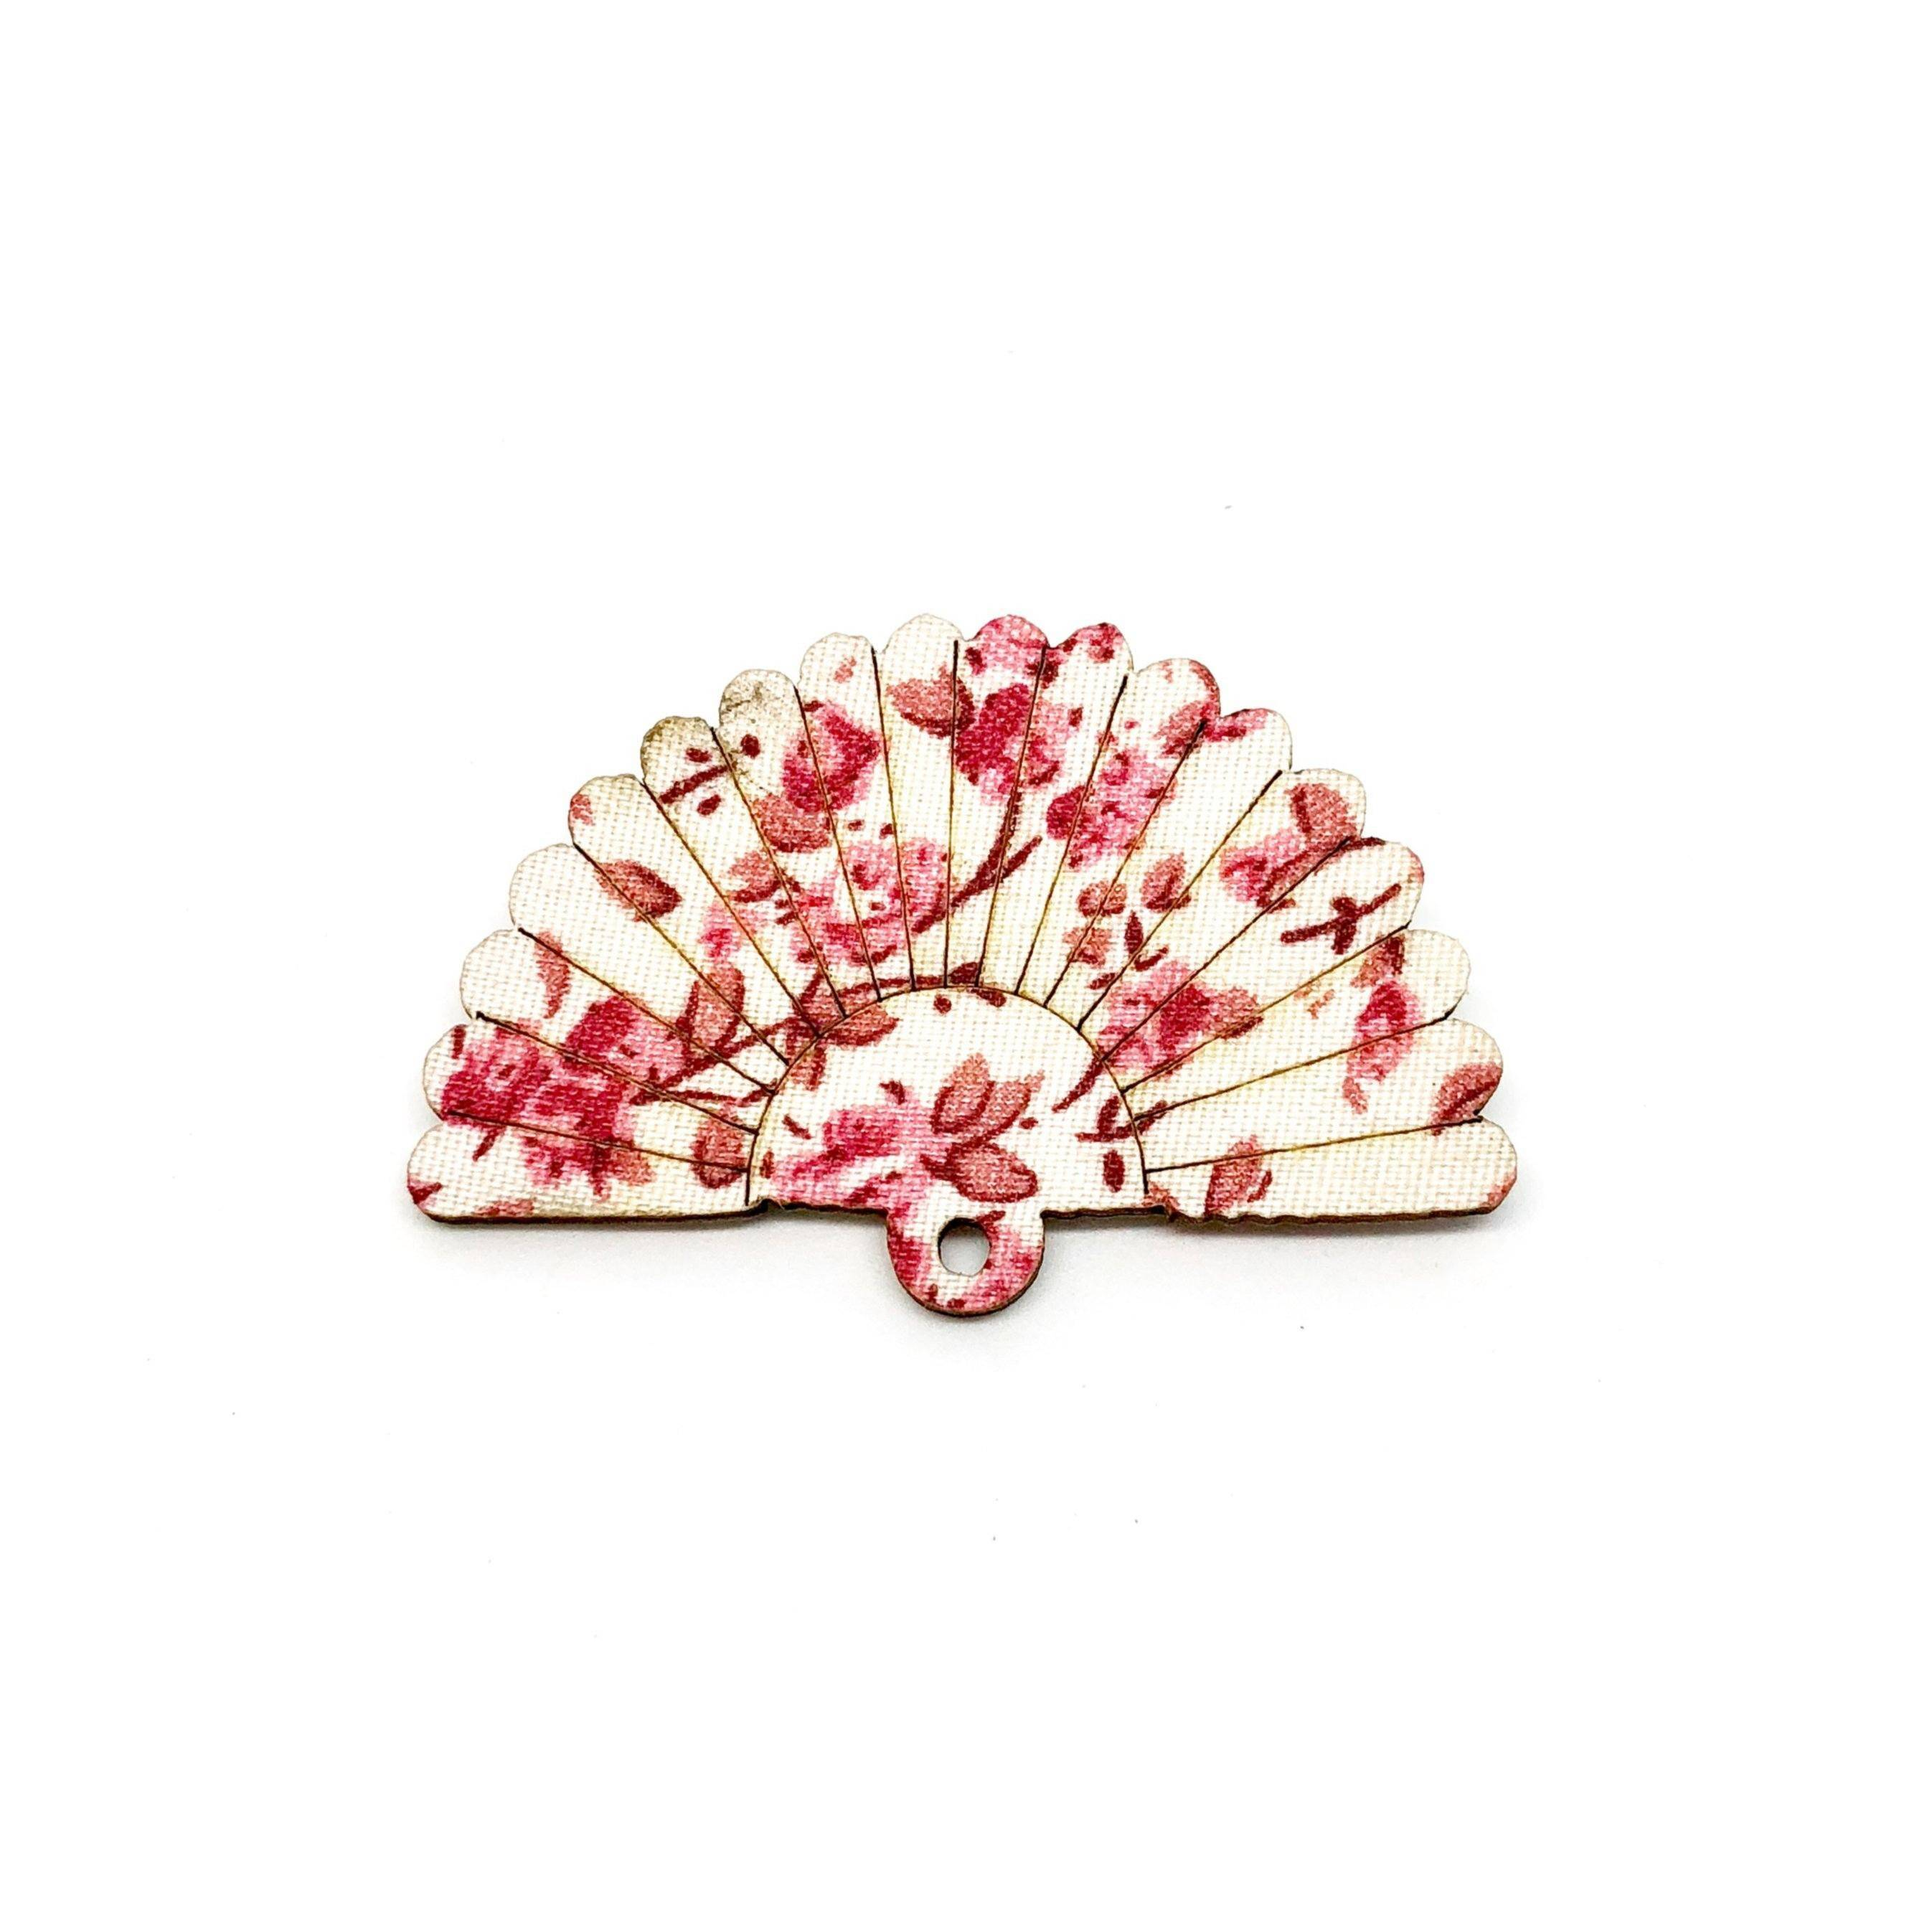 Rose Kimono Sakura Fan Wooden Brooch Pin - Brooches - Paperdaise Accessories - Naiise